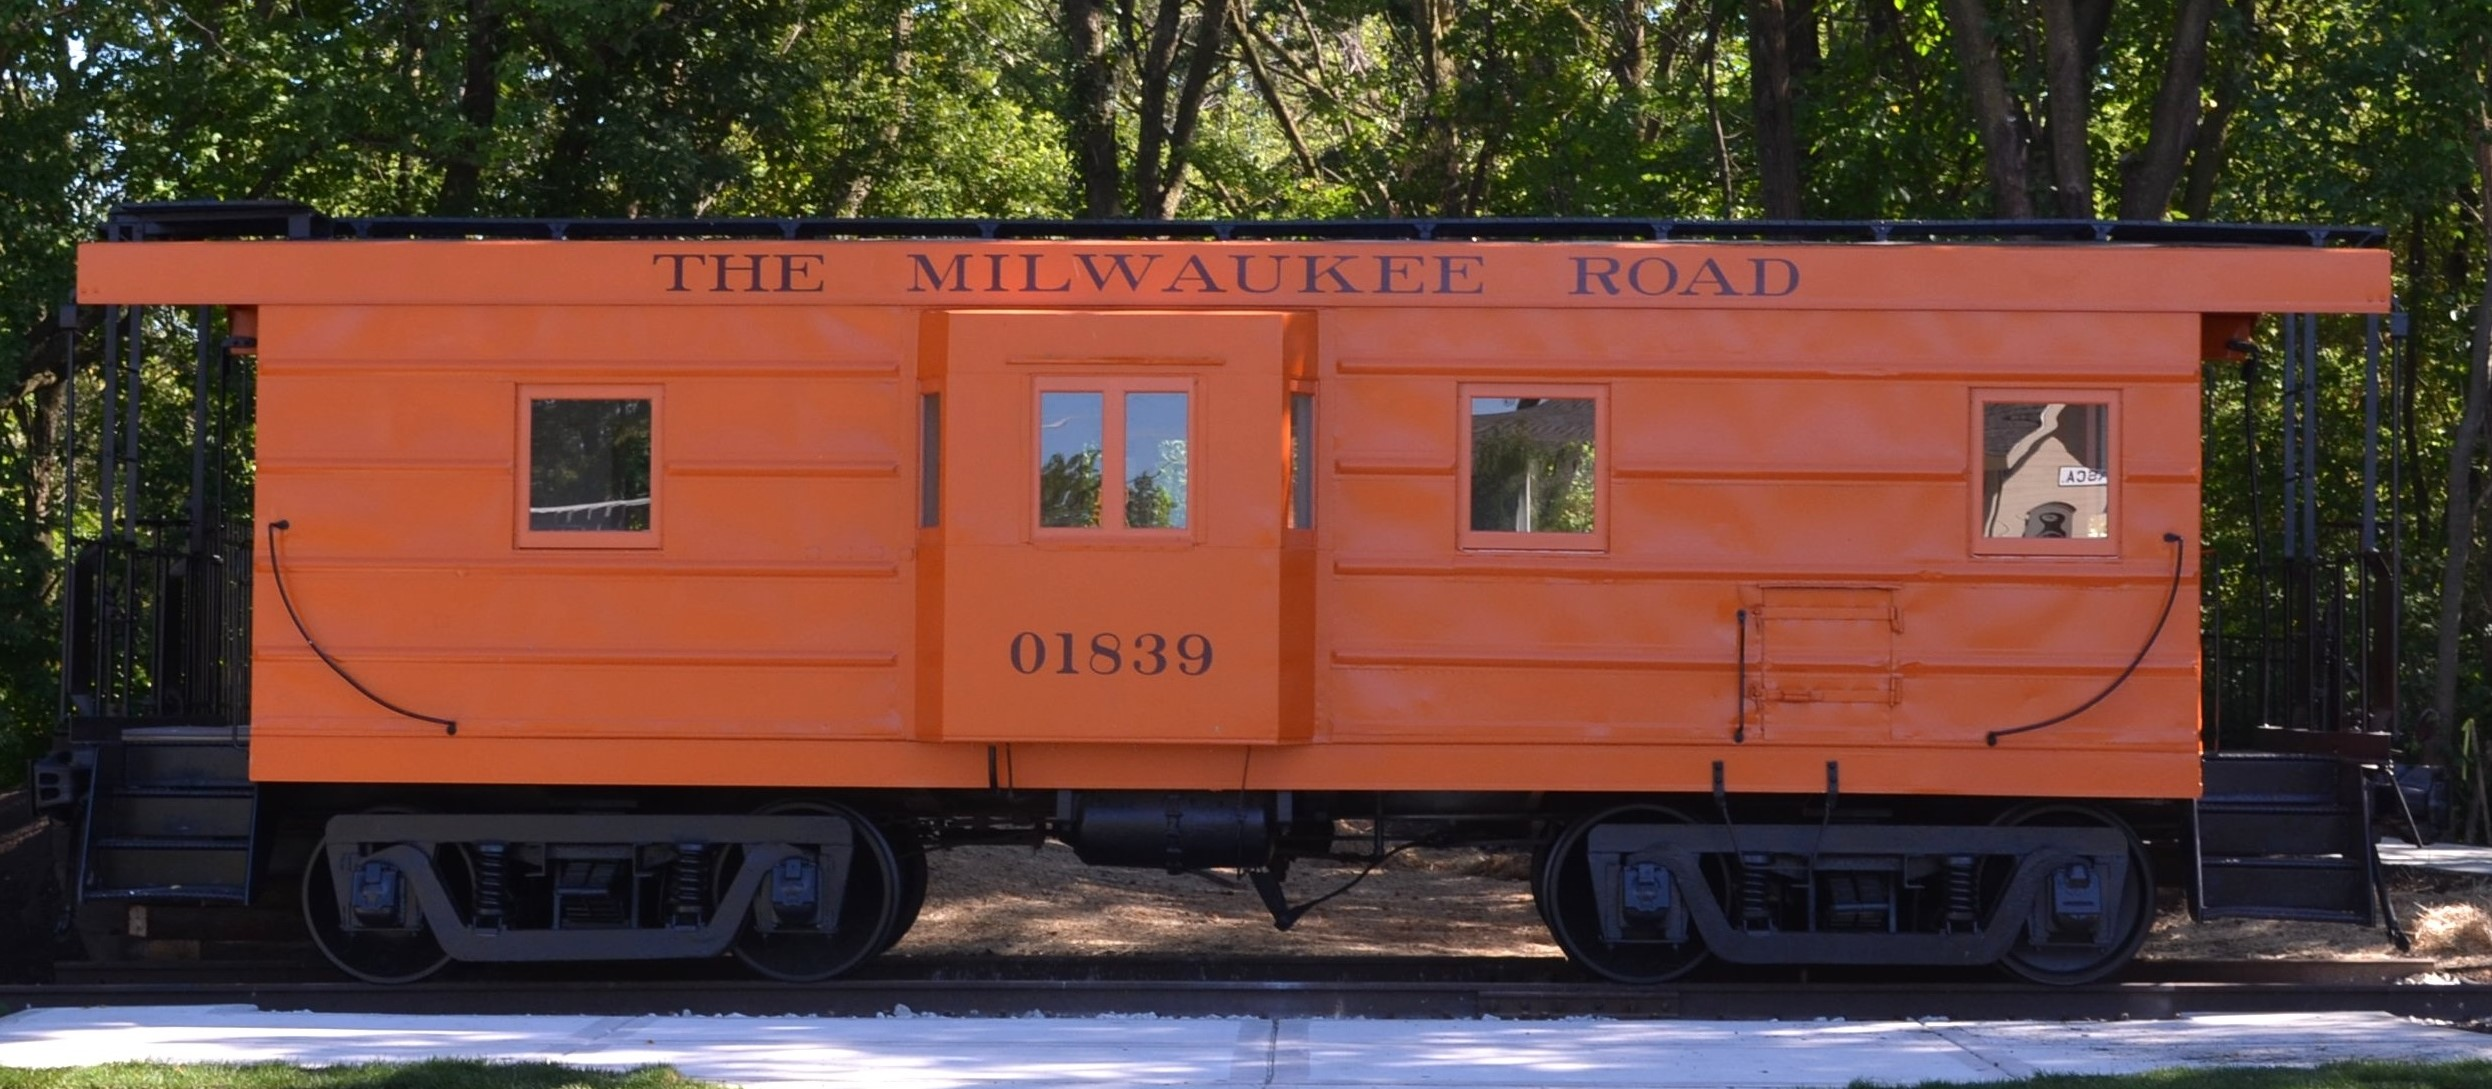 2013 9 Itasca Caboose complete cropped (2).jpg